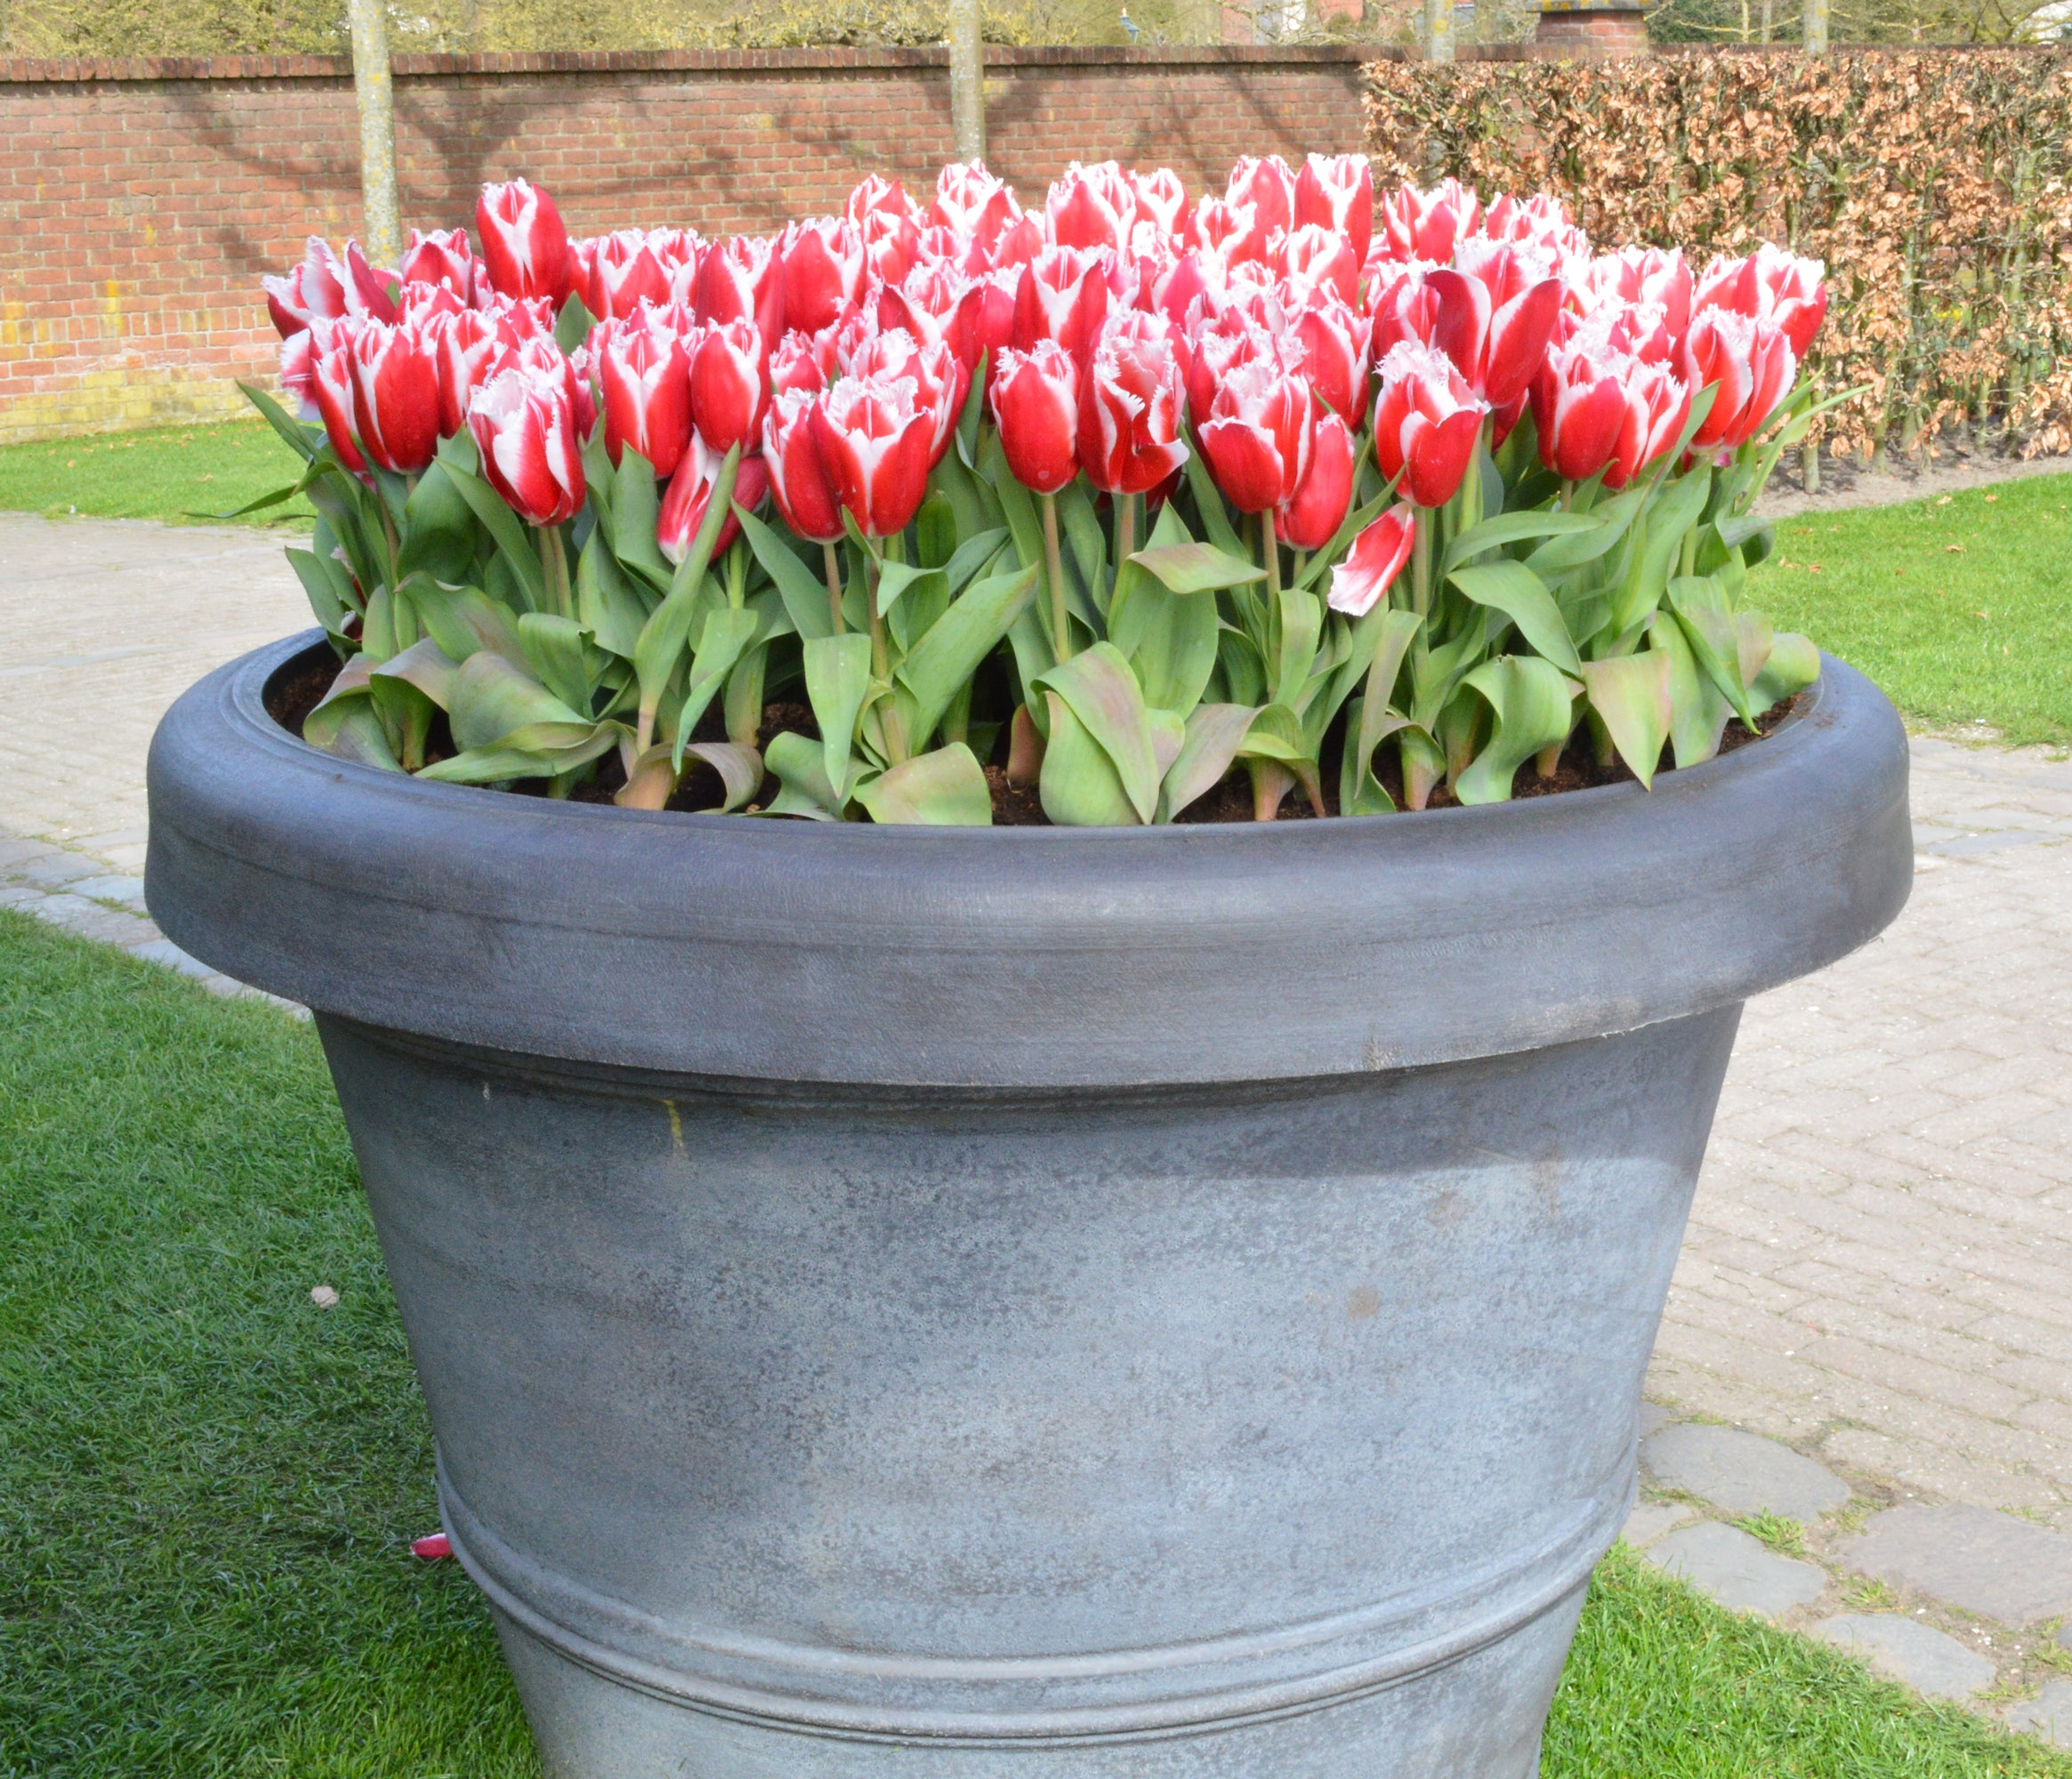 How to Grow Tulips in Pots or Containers?